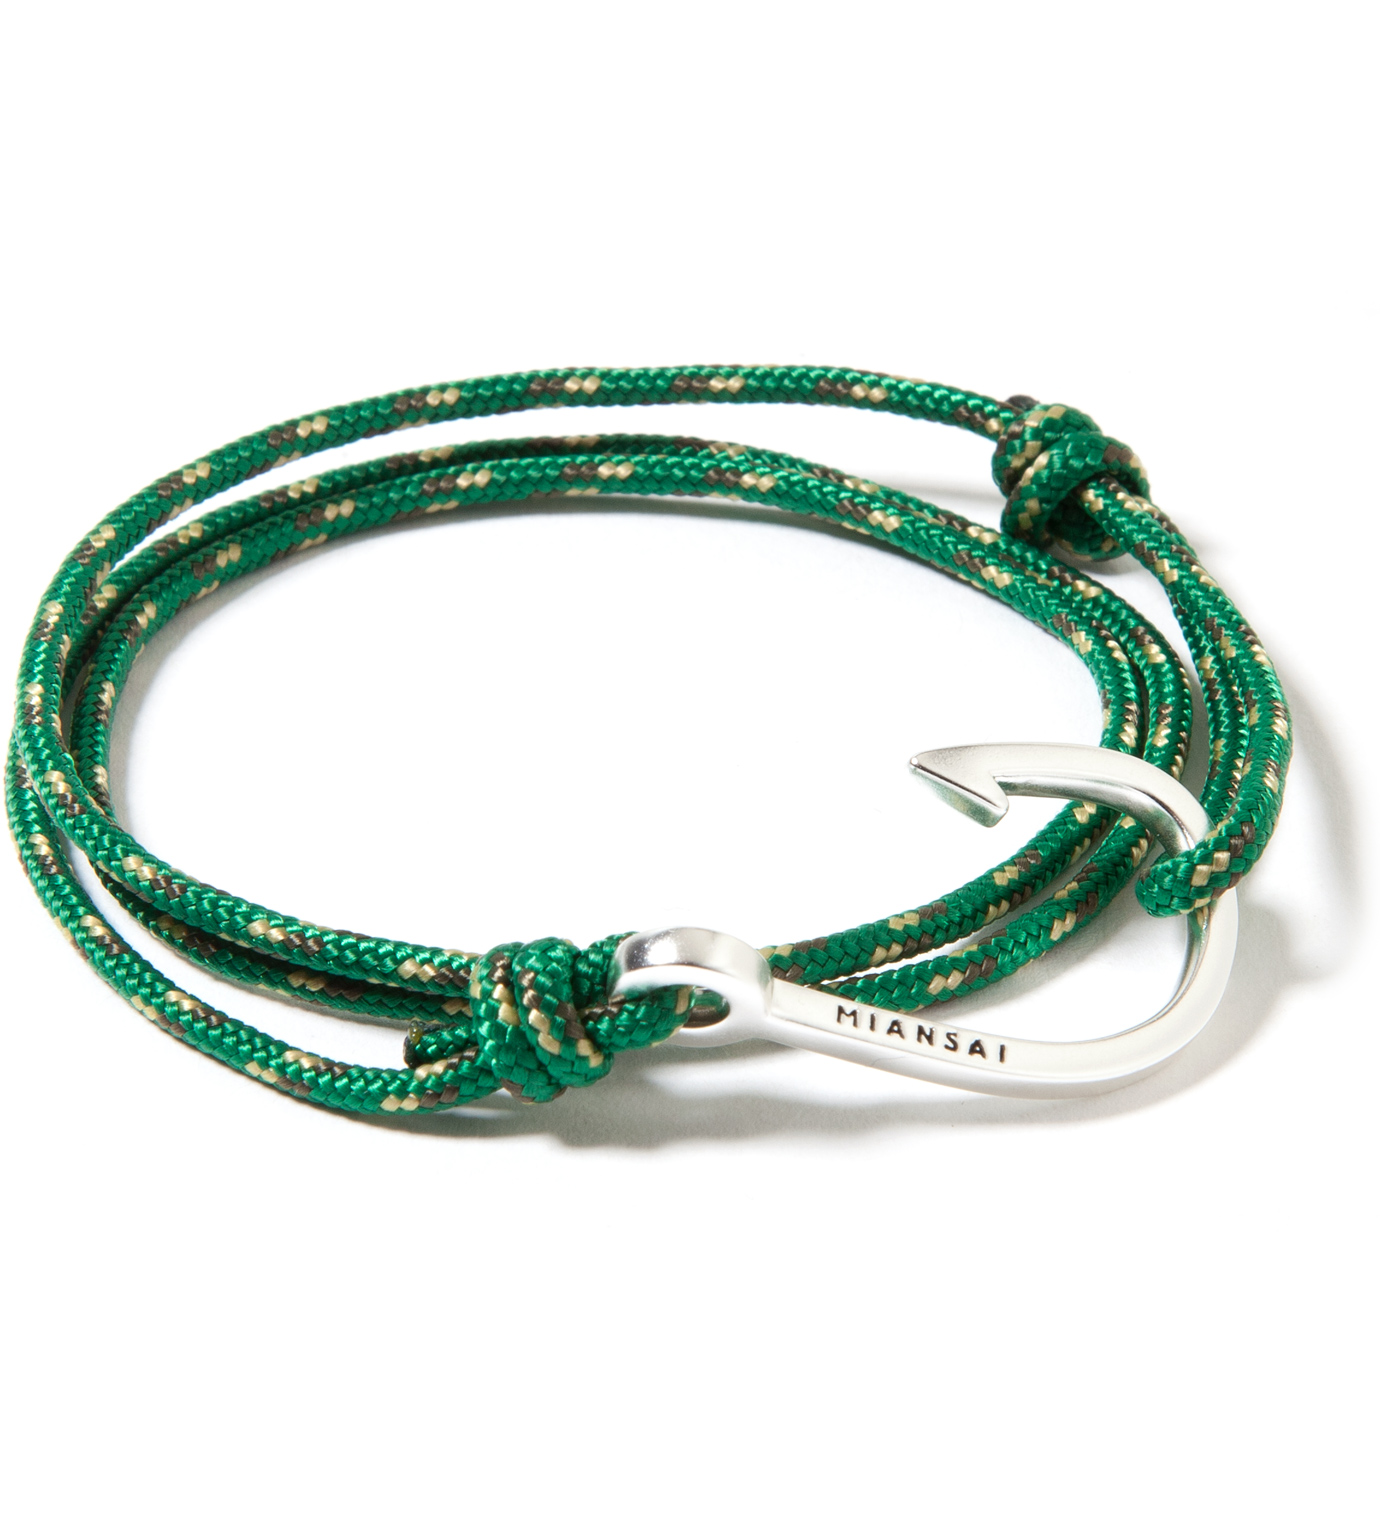 Miansai Silver Hook on Green Rope Bracelet